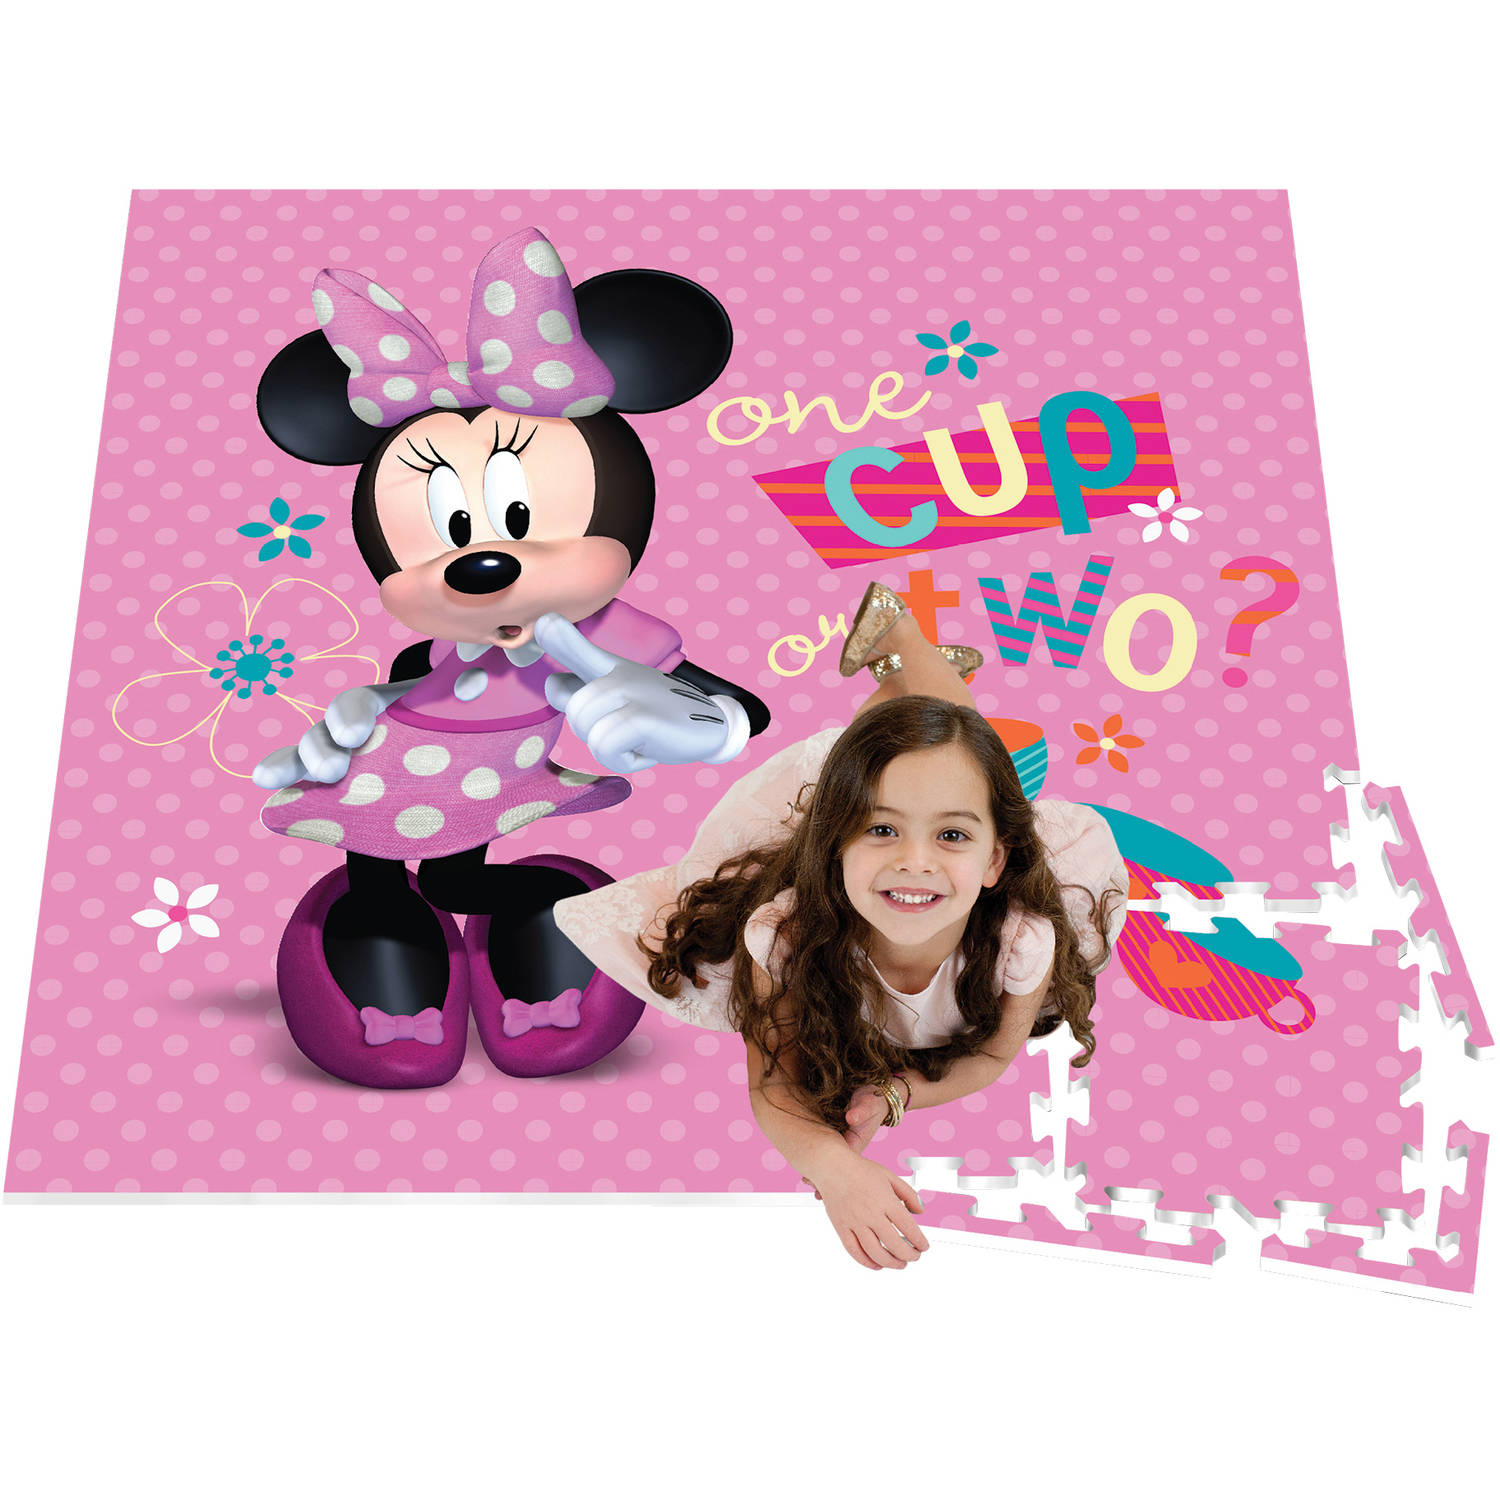 4' v 4' Activity Play Mat, Minnie Mouse